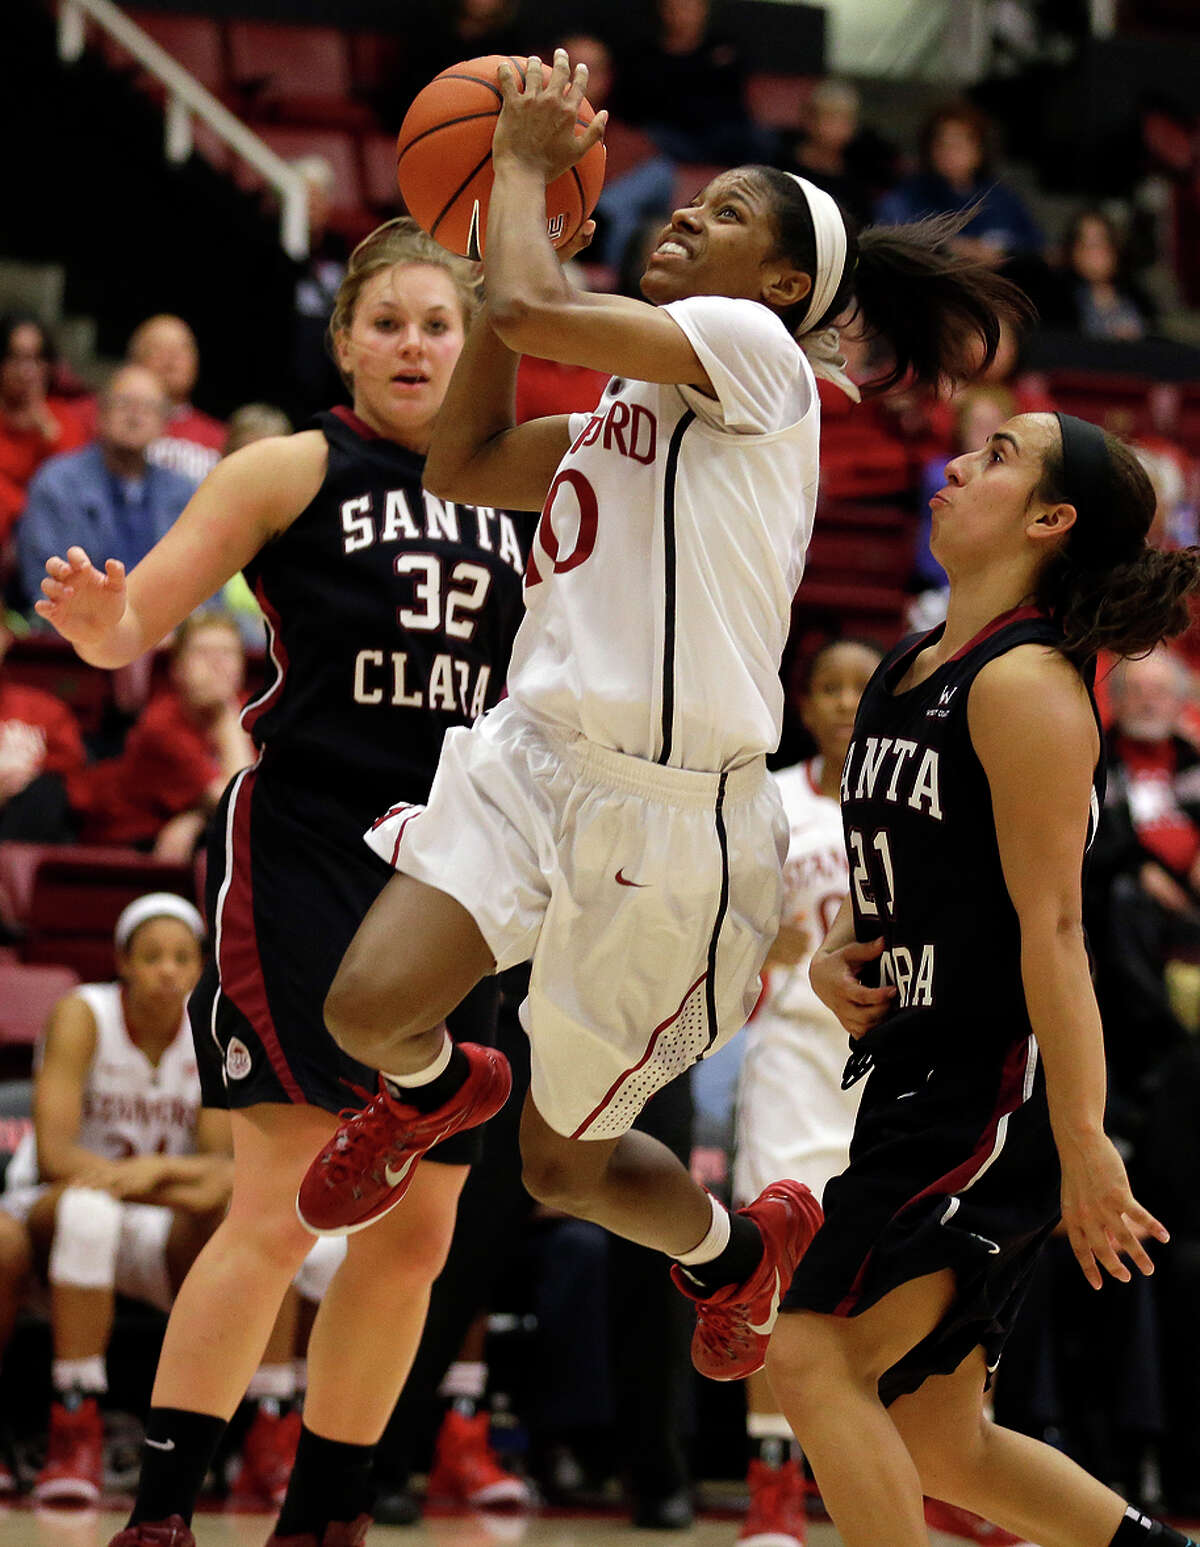 Stanford's Briana Roberson, who had 21 points against UCLA on Jan. 23, is averaging 11.8 points over her past five games.